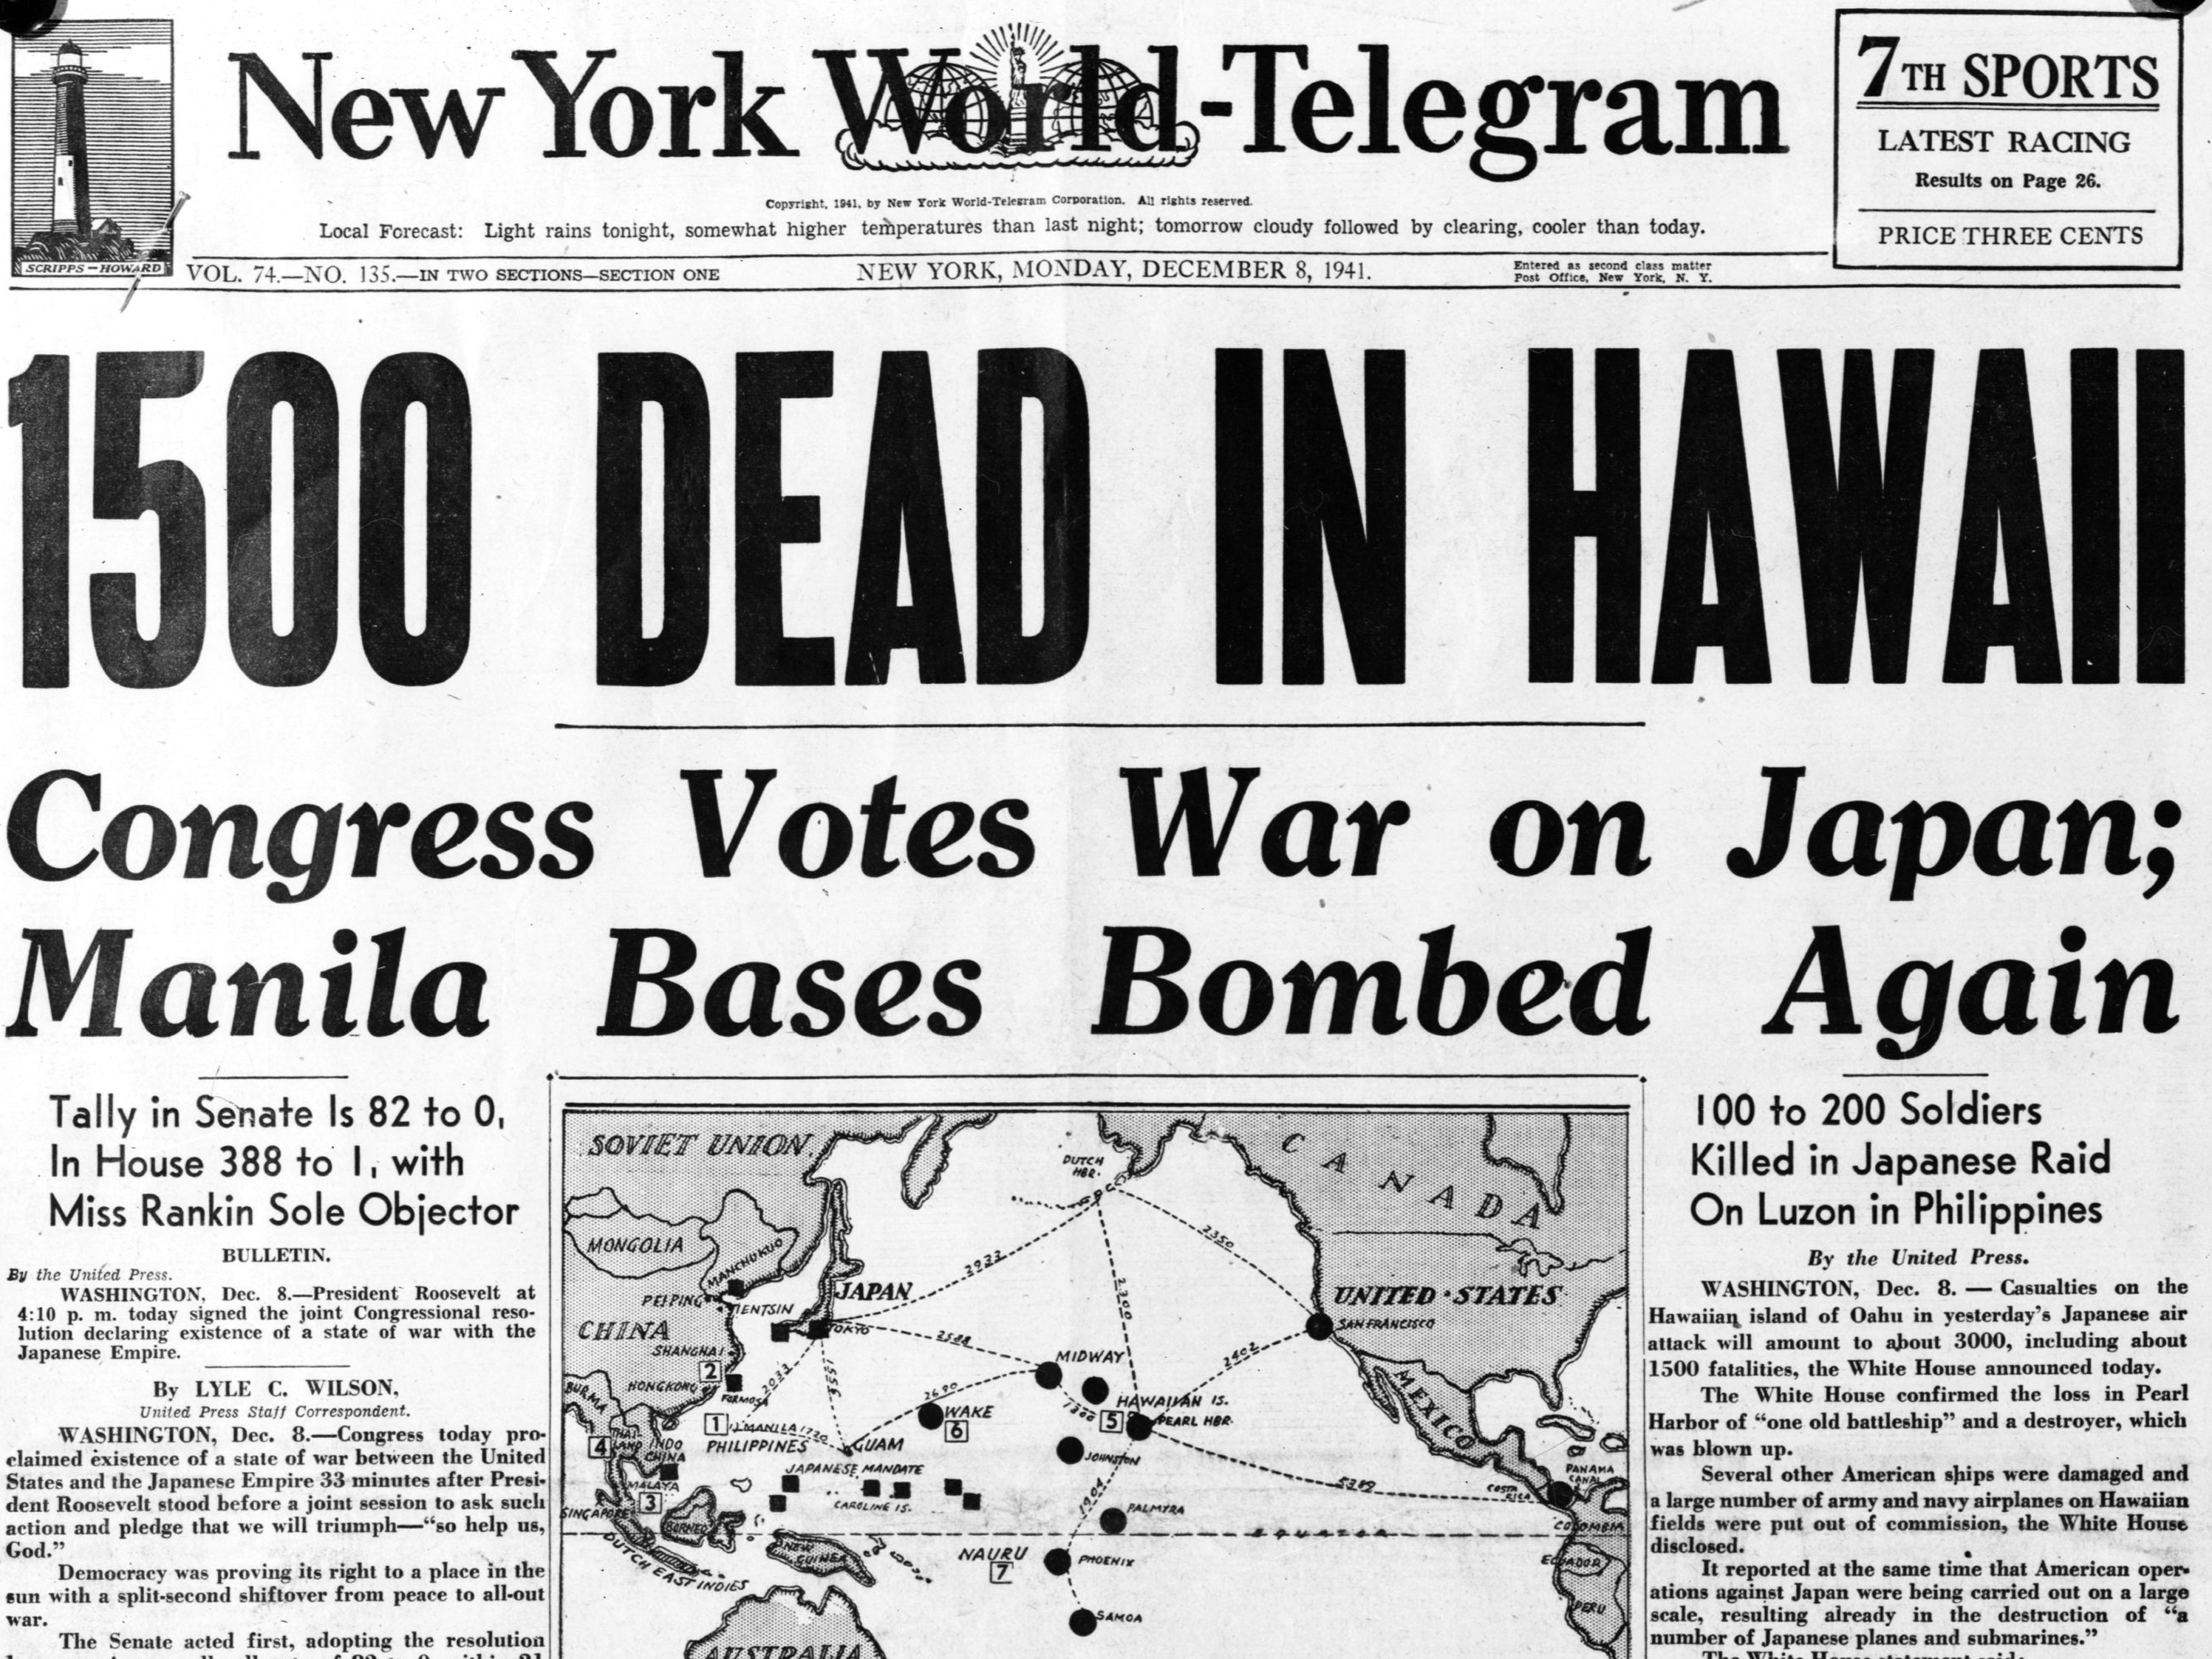 a history of bombing of pearl harbor Shortly before 0800 on 7 december 1941, japanese forces launched an attack on pearl harbor the intent was to undermine the ability of the us pacific fleet to counter expansion of the japanese empire in southeast asia.